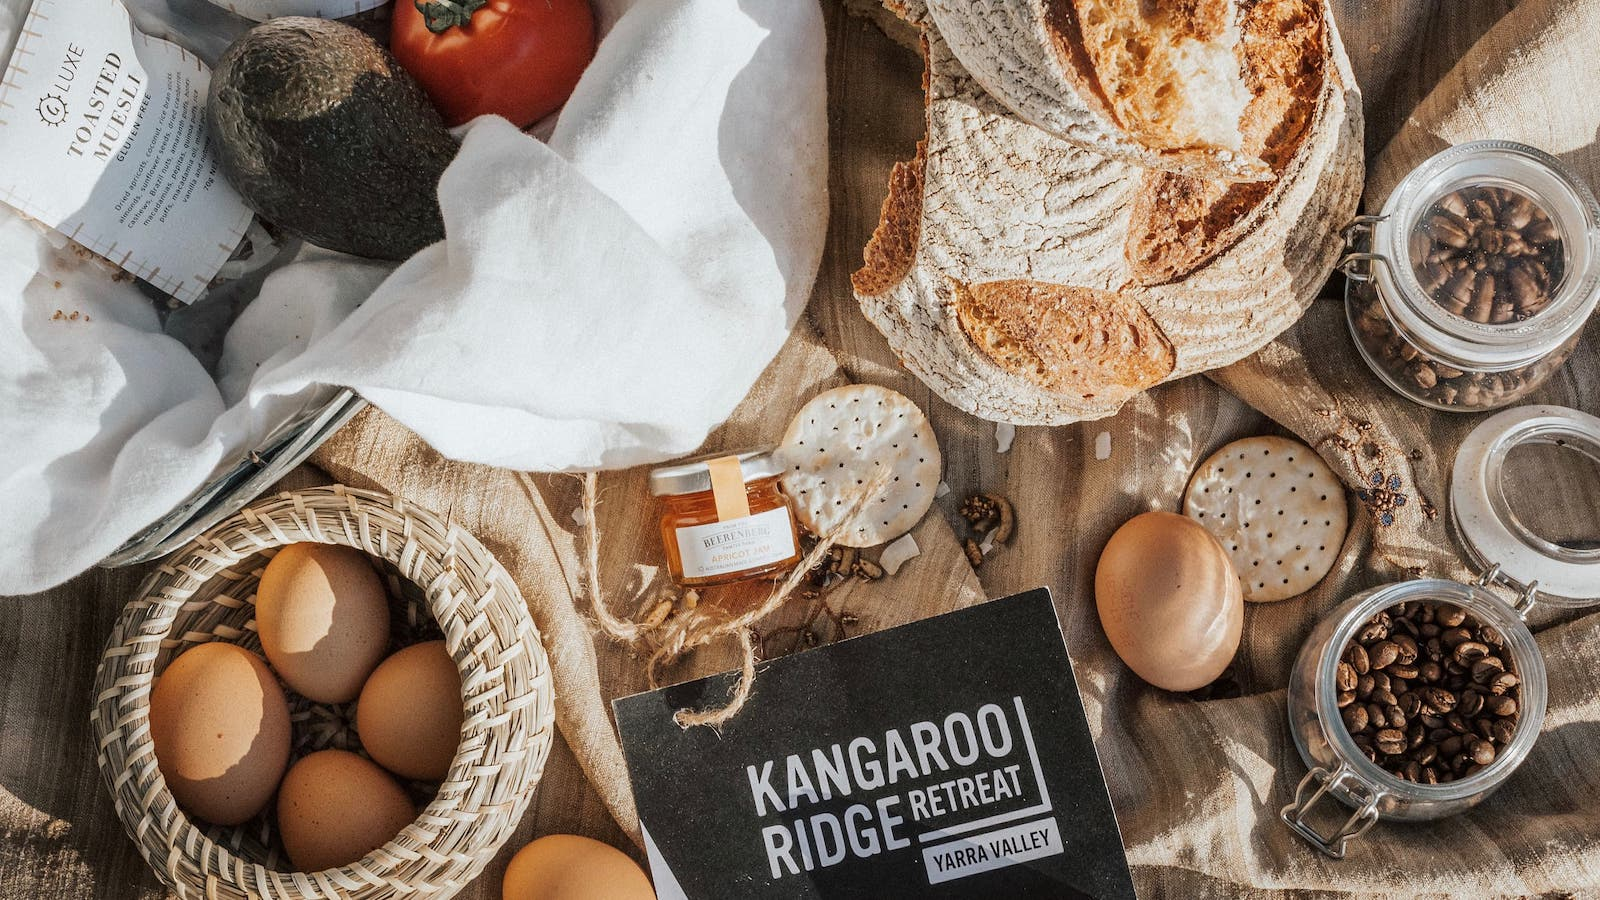 Styled_Breakfast_Spread_Kangaroo_Ridge_Retreat-6